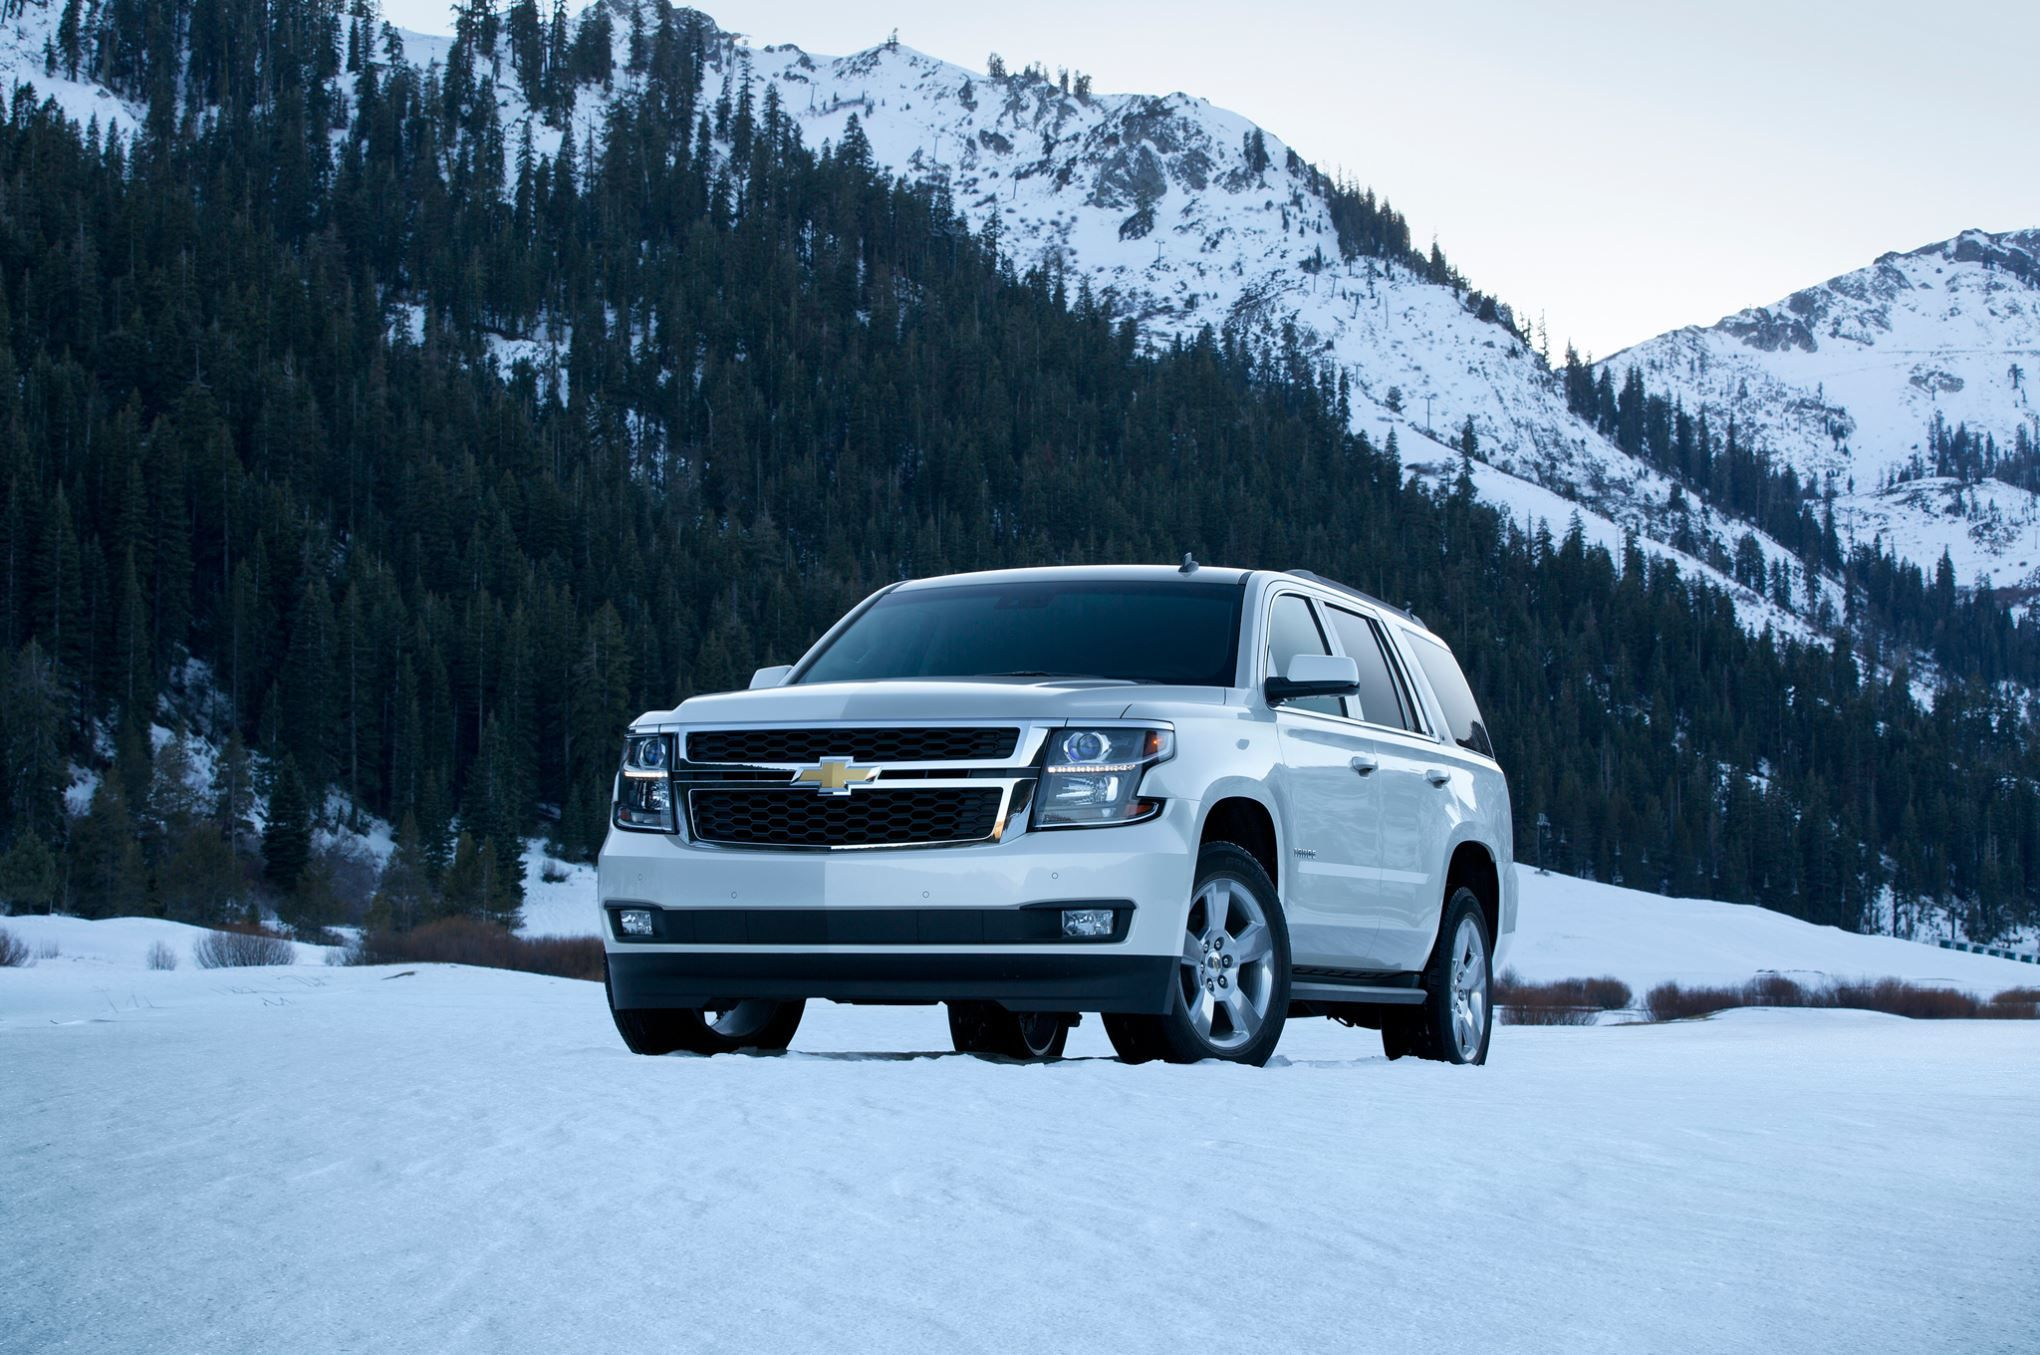 2015 2016 Trucks Suvs And Vans The Ultimate Buyer S Guide Chevy Tahoe Chevrolet Tahoe Chevrolet